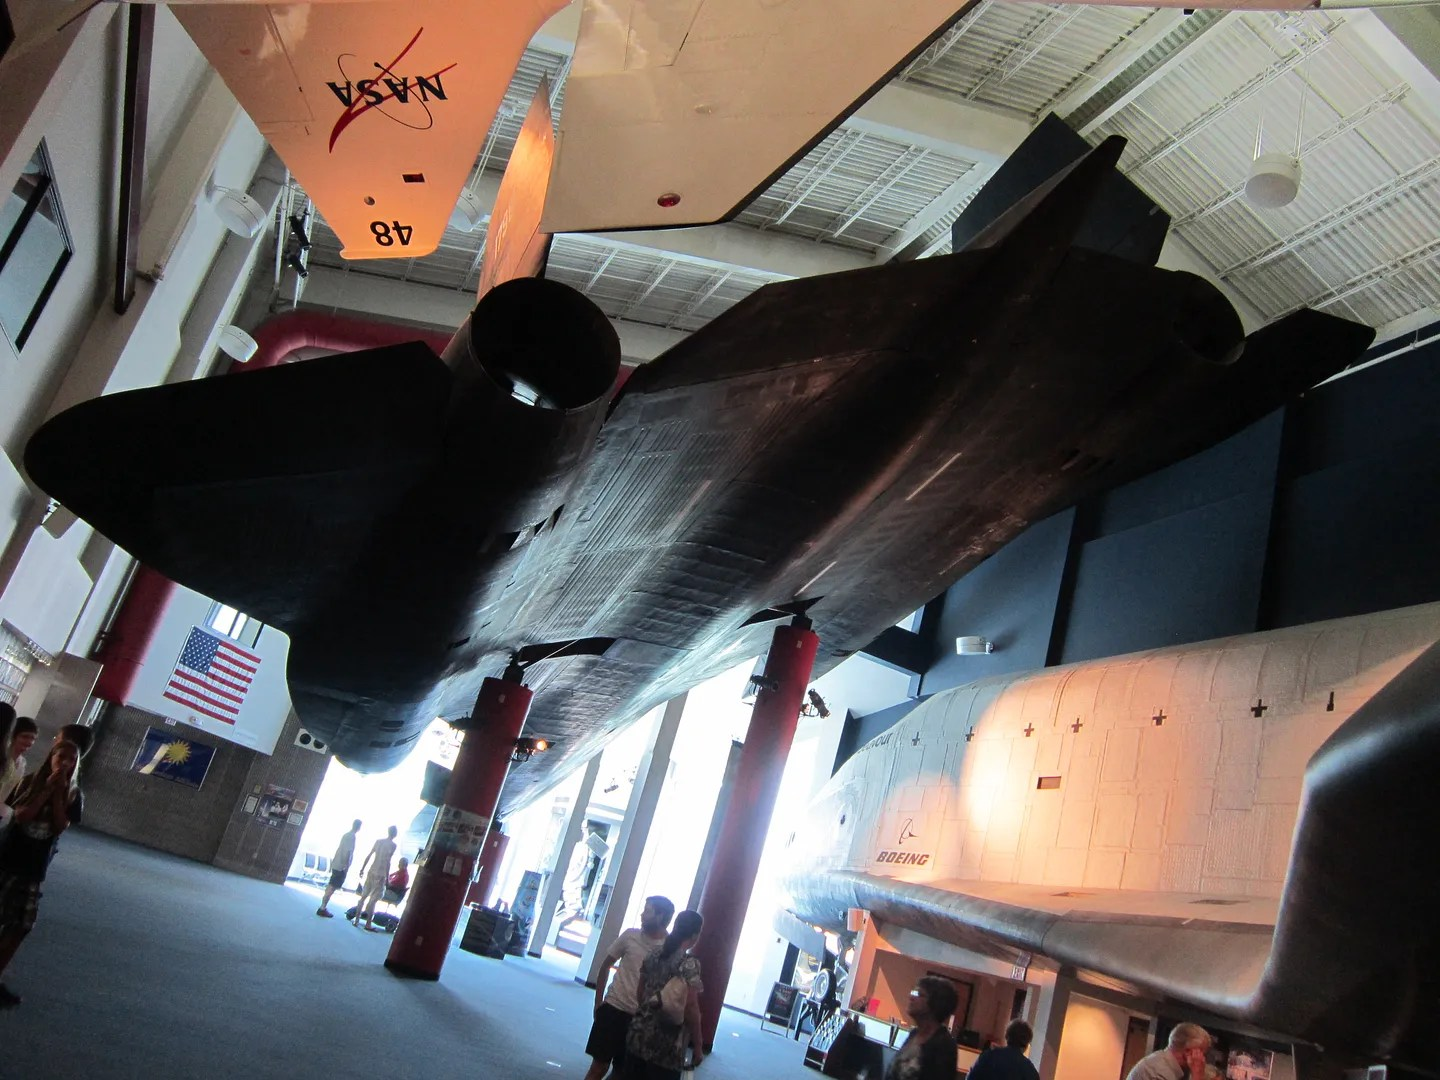 Lockheed SR-71A Blackbird, Kansas Cosmosphere & Space Center, Hutchinson, Kansas